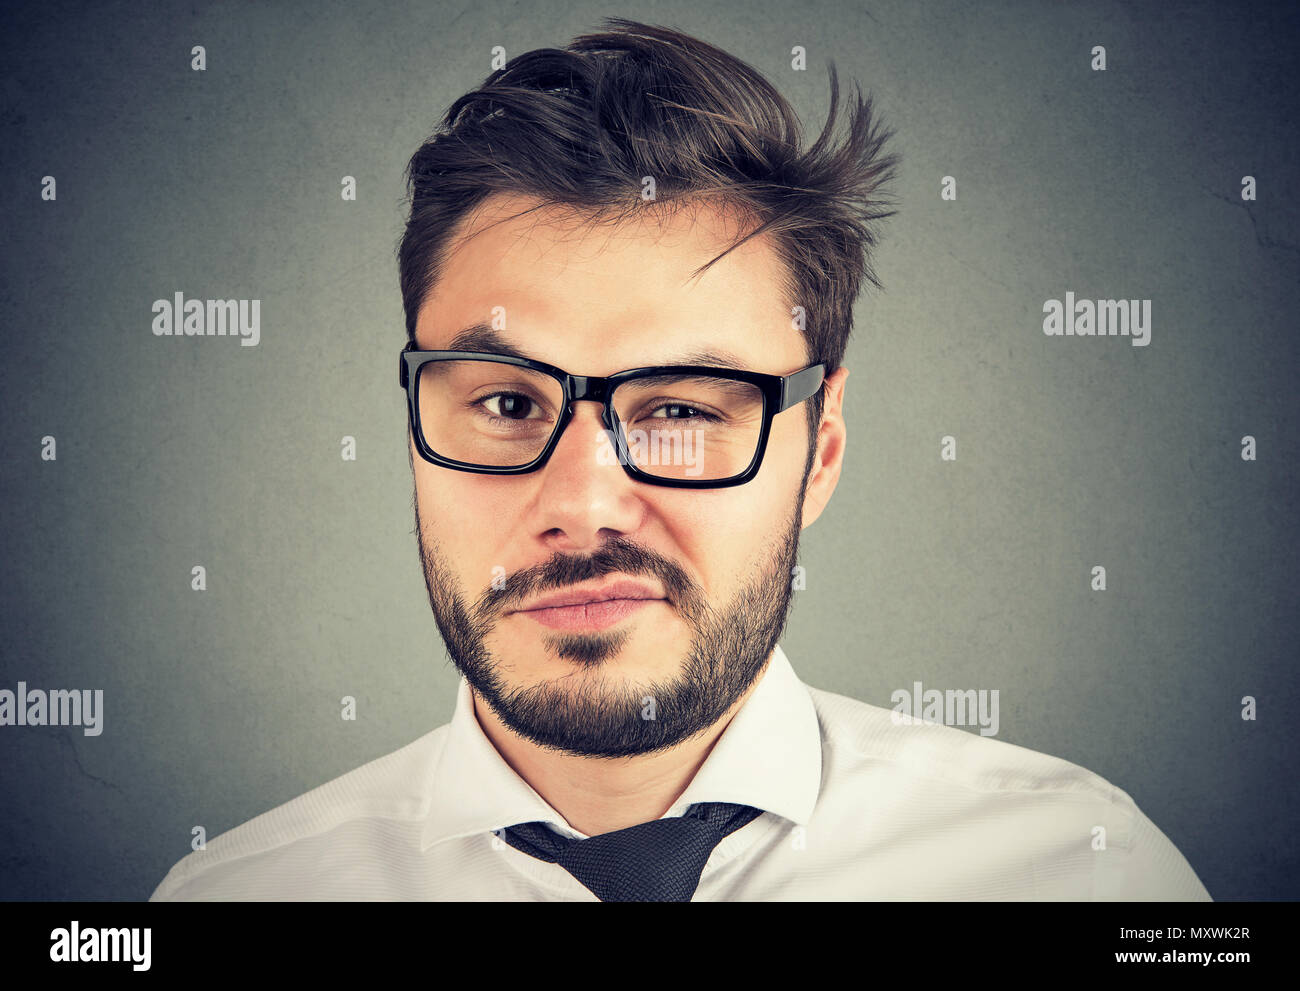 Business man in glassess looking super skeptically at camera with expression of annoyance and misunderstand - Stock Image